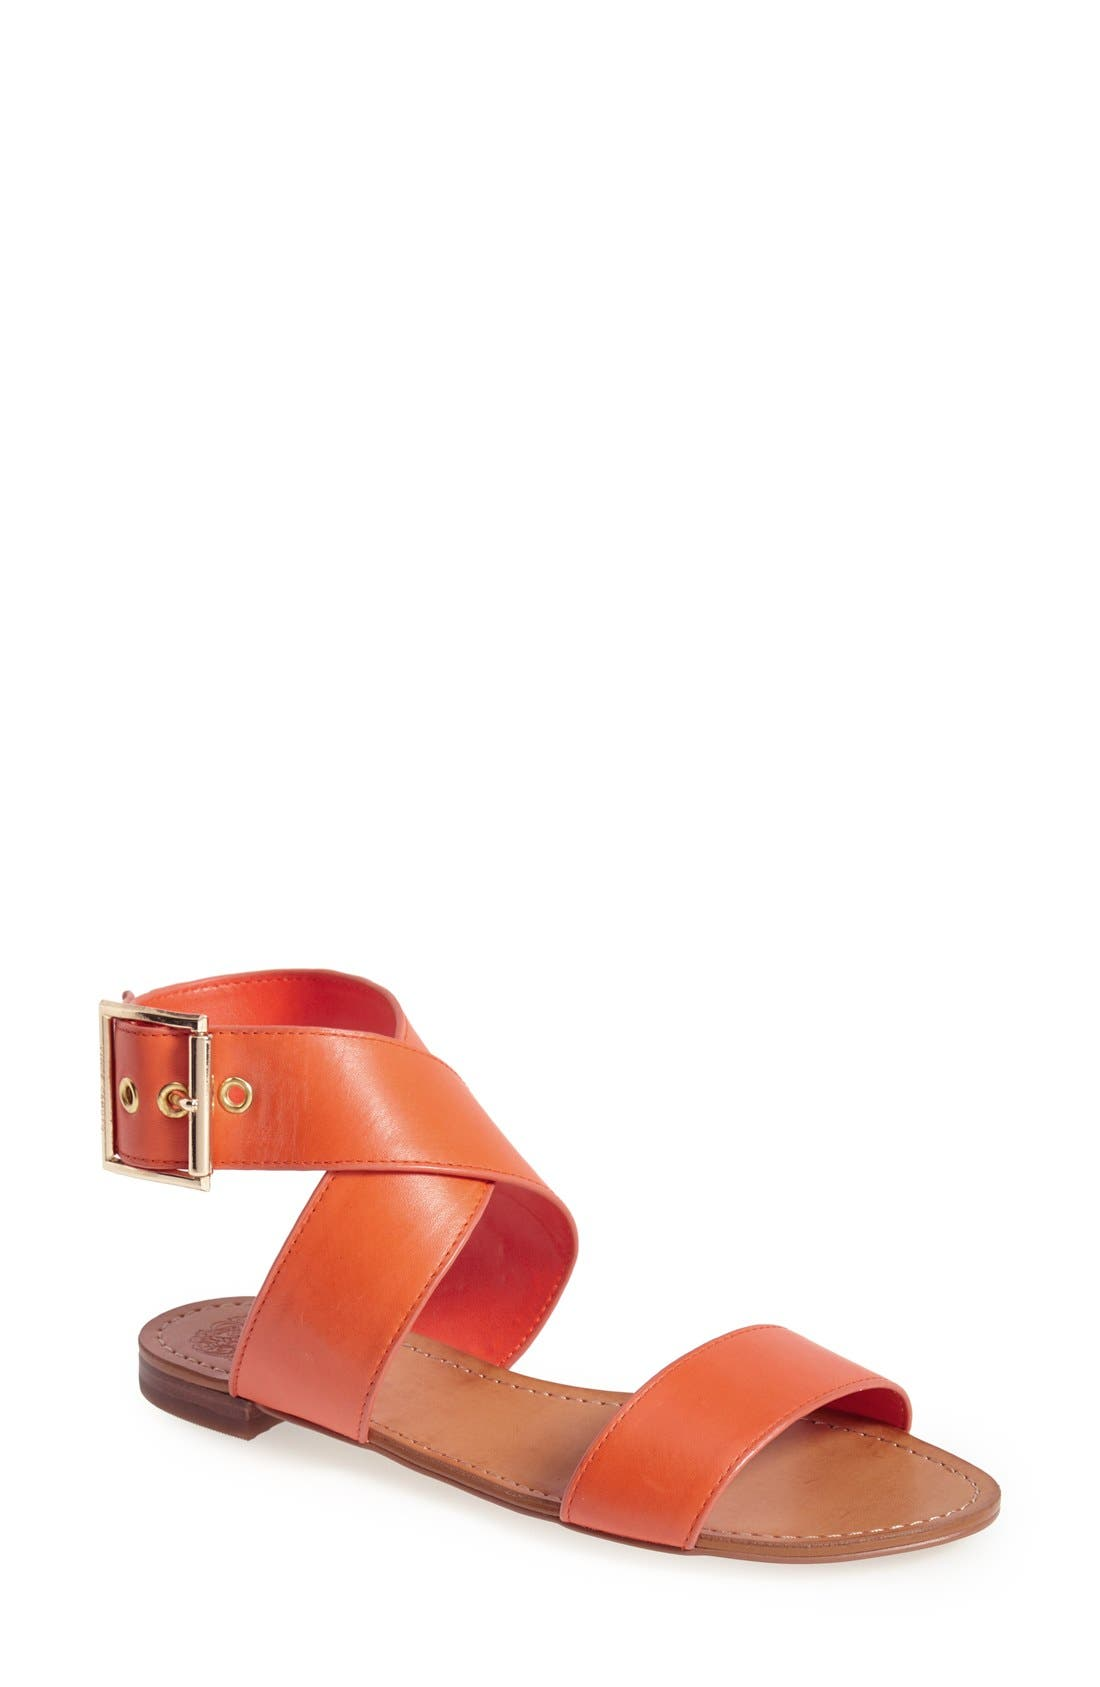 Alternate Image 1 Selected - Vince Camuto 'Maren' Leather Ankle Strap Sandal (Women)